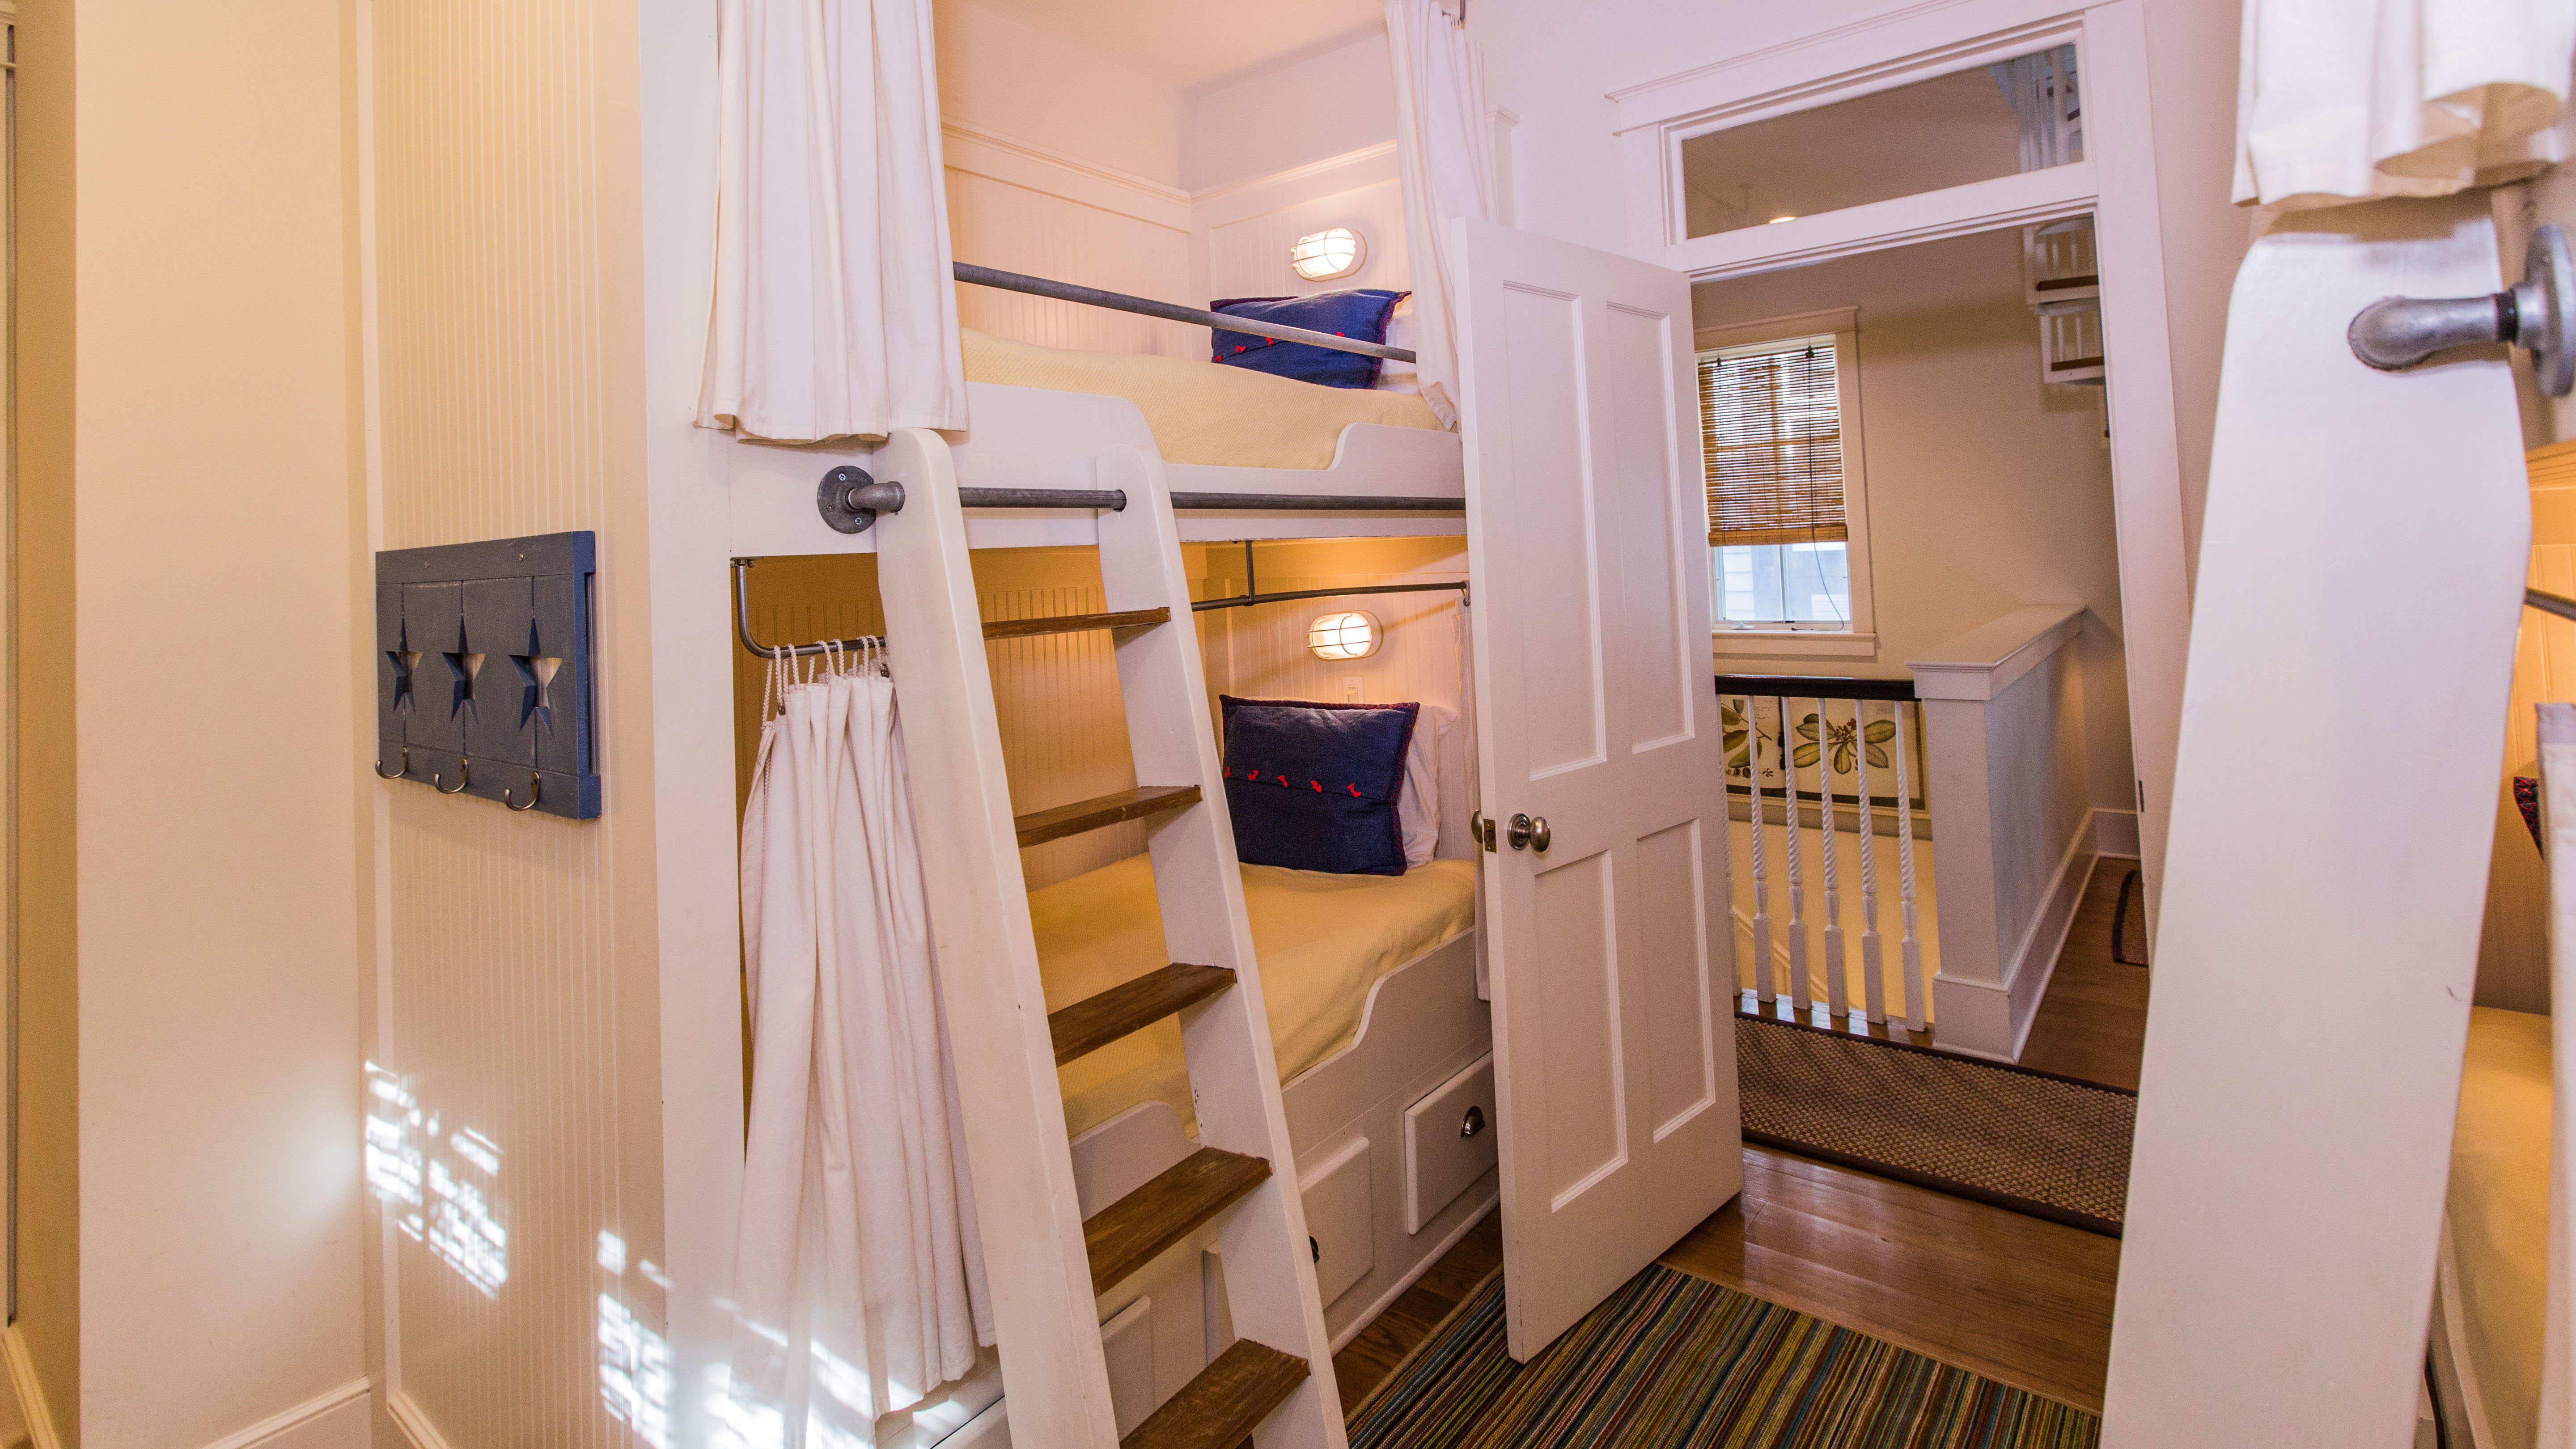 Each bunk has an individual reading light